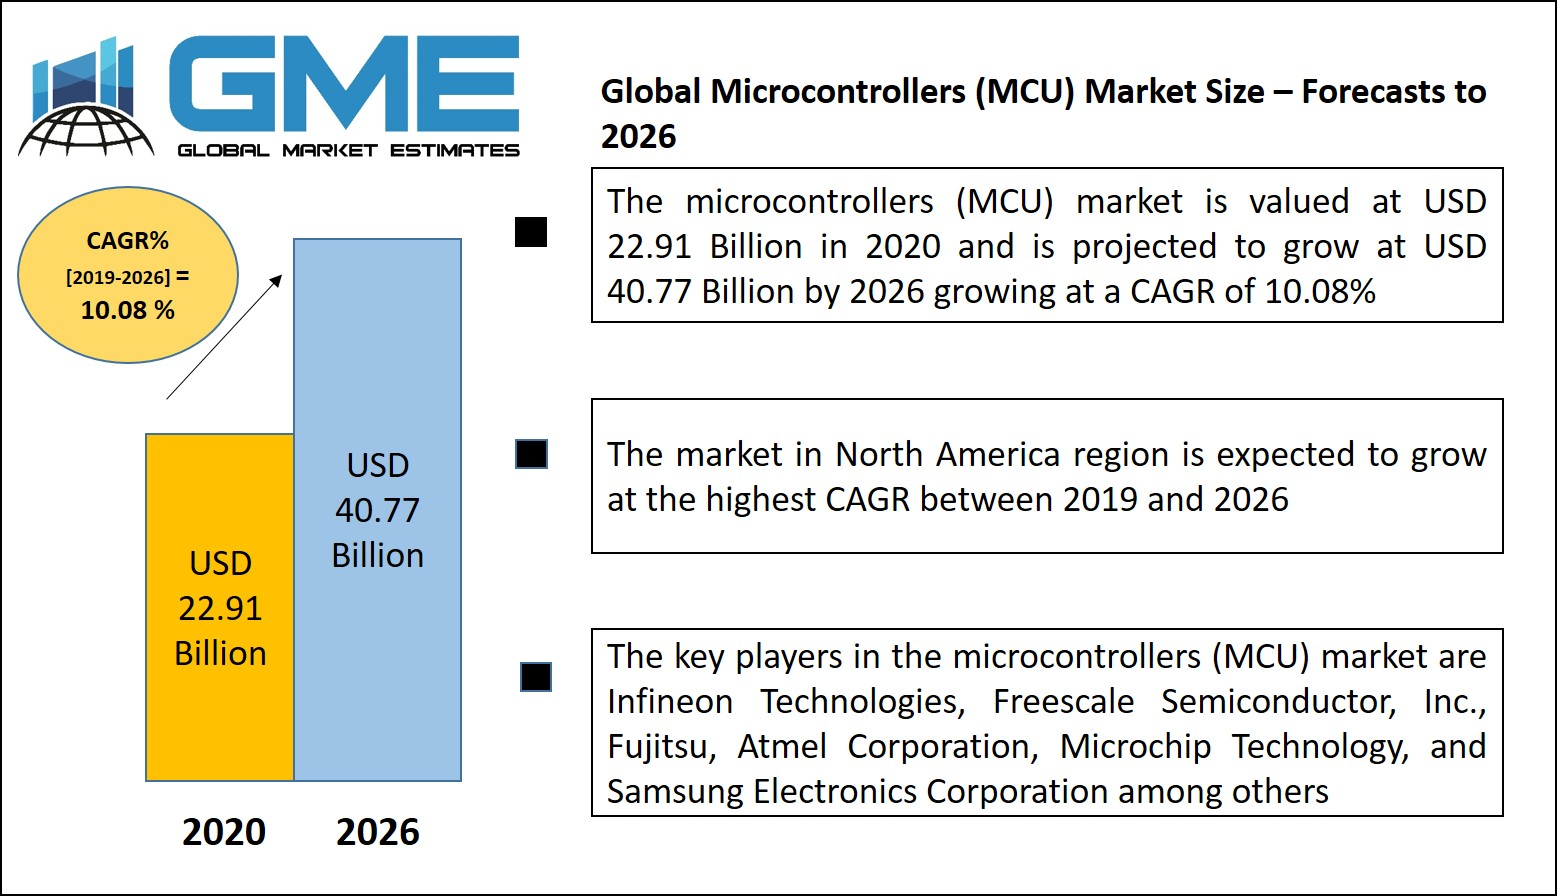 Global Microcontrollers (MCU) Market Size – Forecasts to 2026